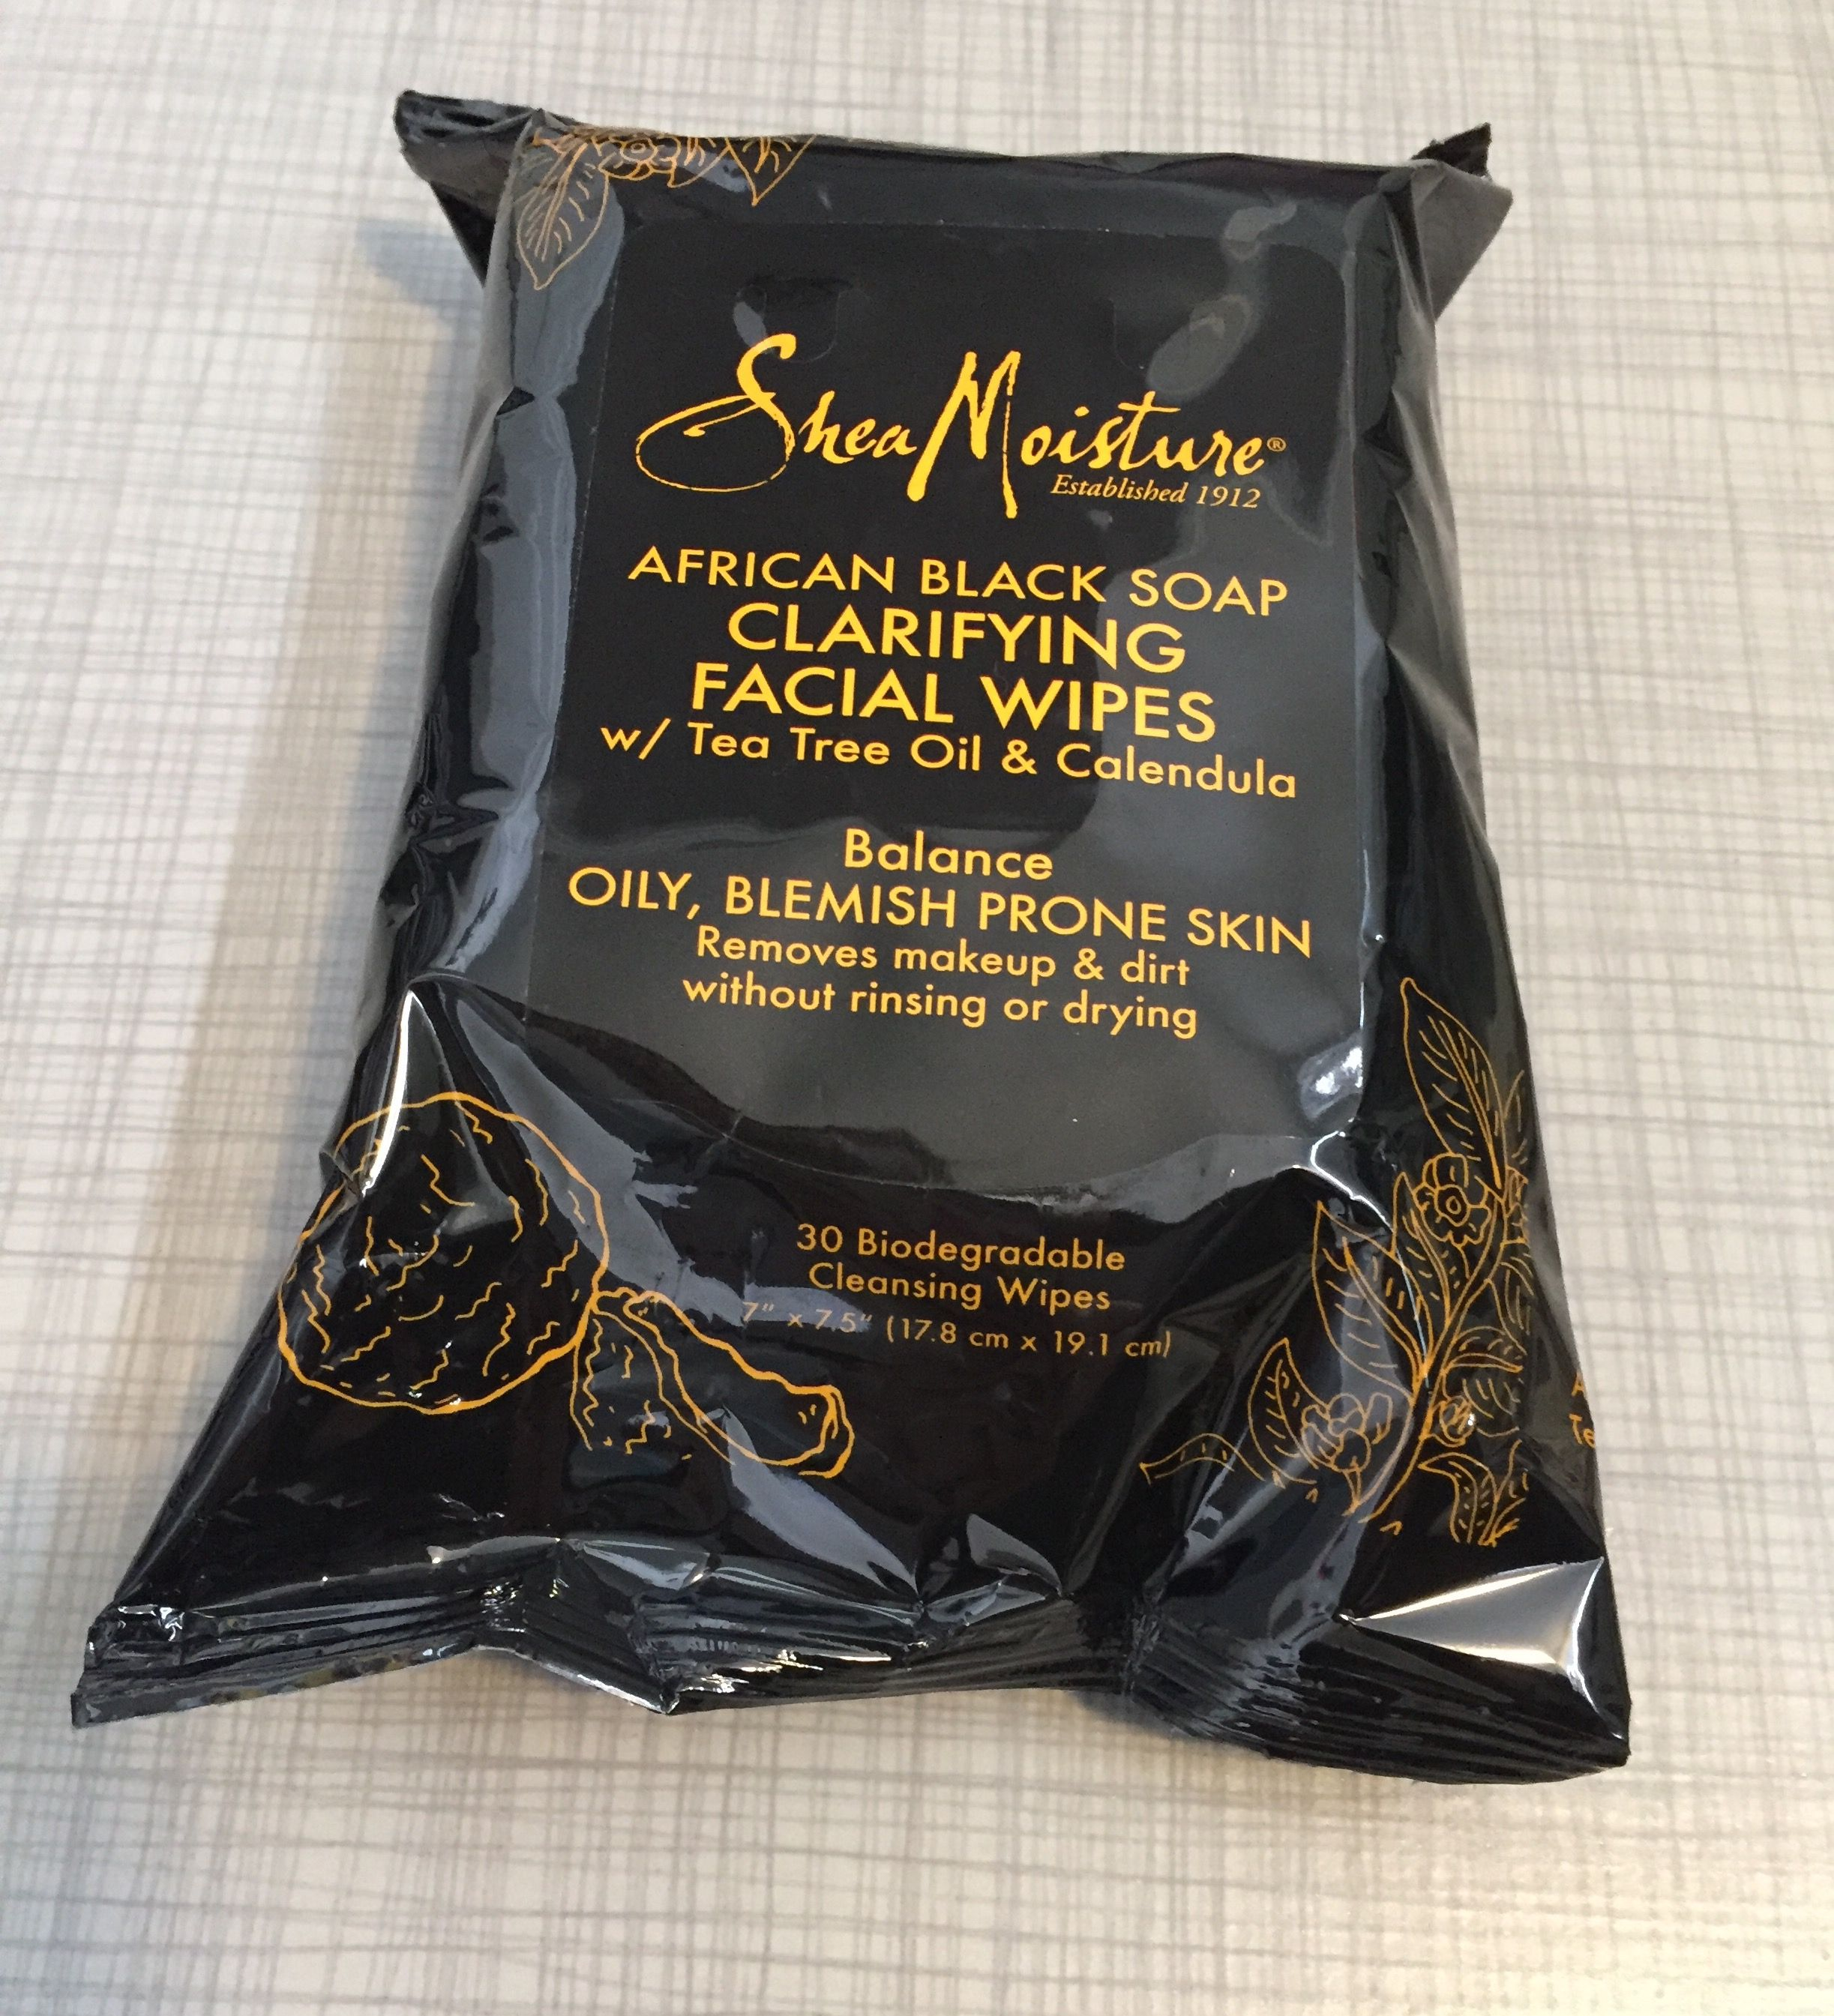 Zendaya Skin Care Routine Shea Moisture African Black Soap Clarifying Facial Wipes Don T Know About Skin Routine Shea Moisture Products Best Skin Care Routine